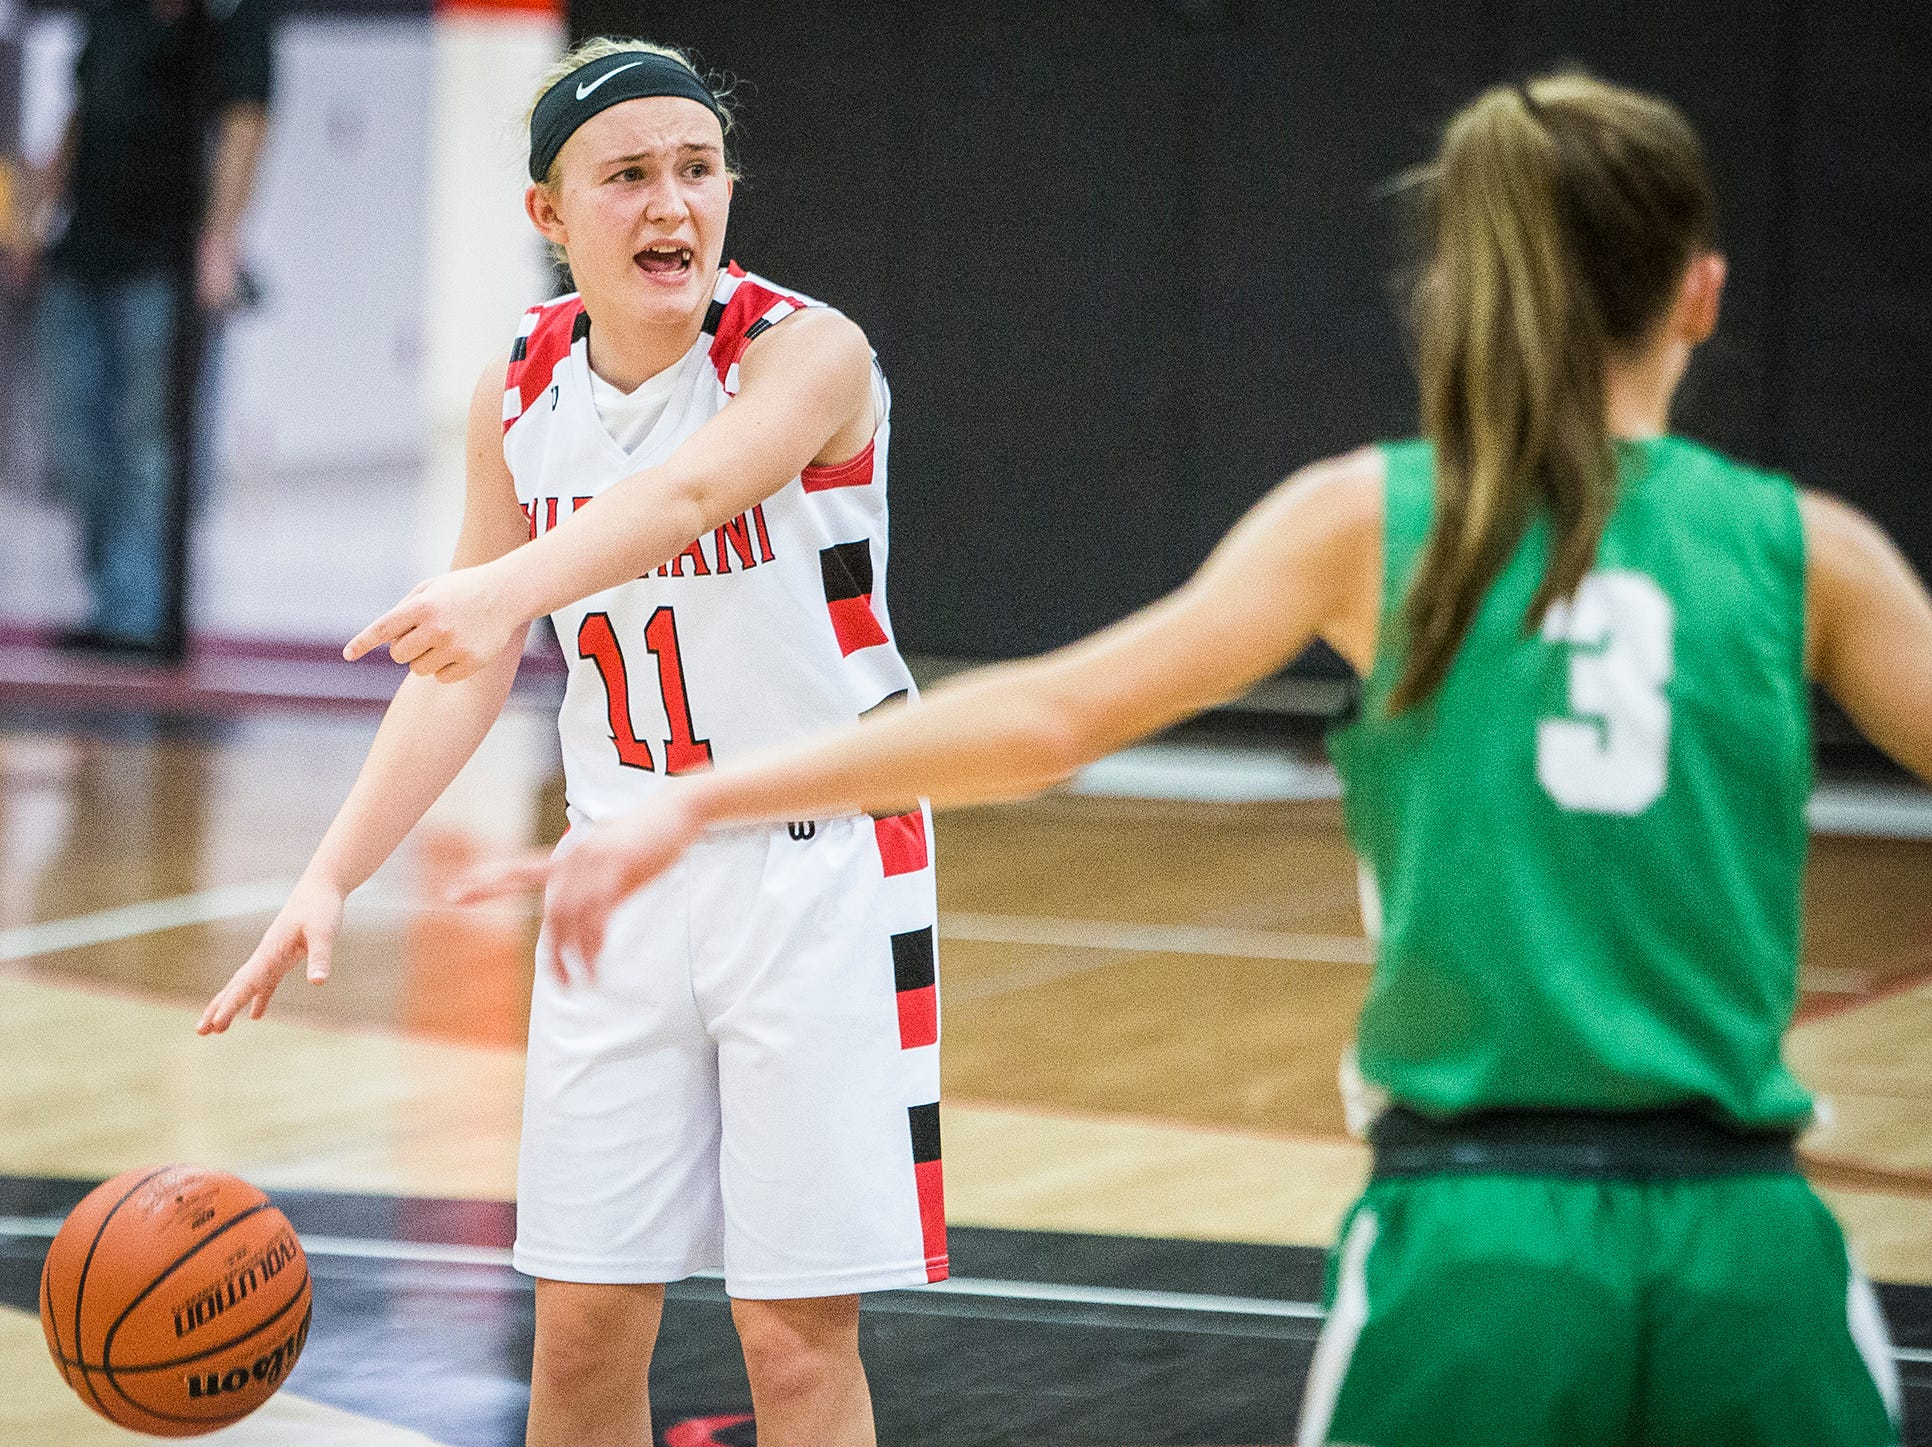 Wapahani's Madison Thompson moves the ball against Yorktown's defense during their game at Wapahani High School Tuesday, Dec. 4, 2018.